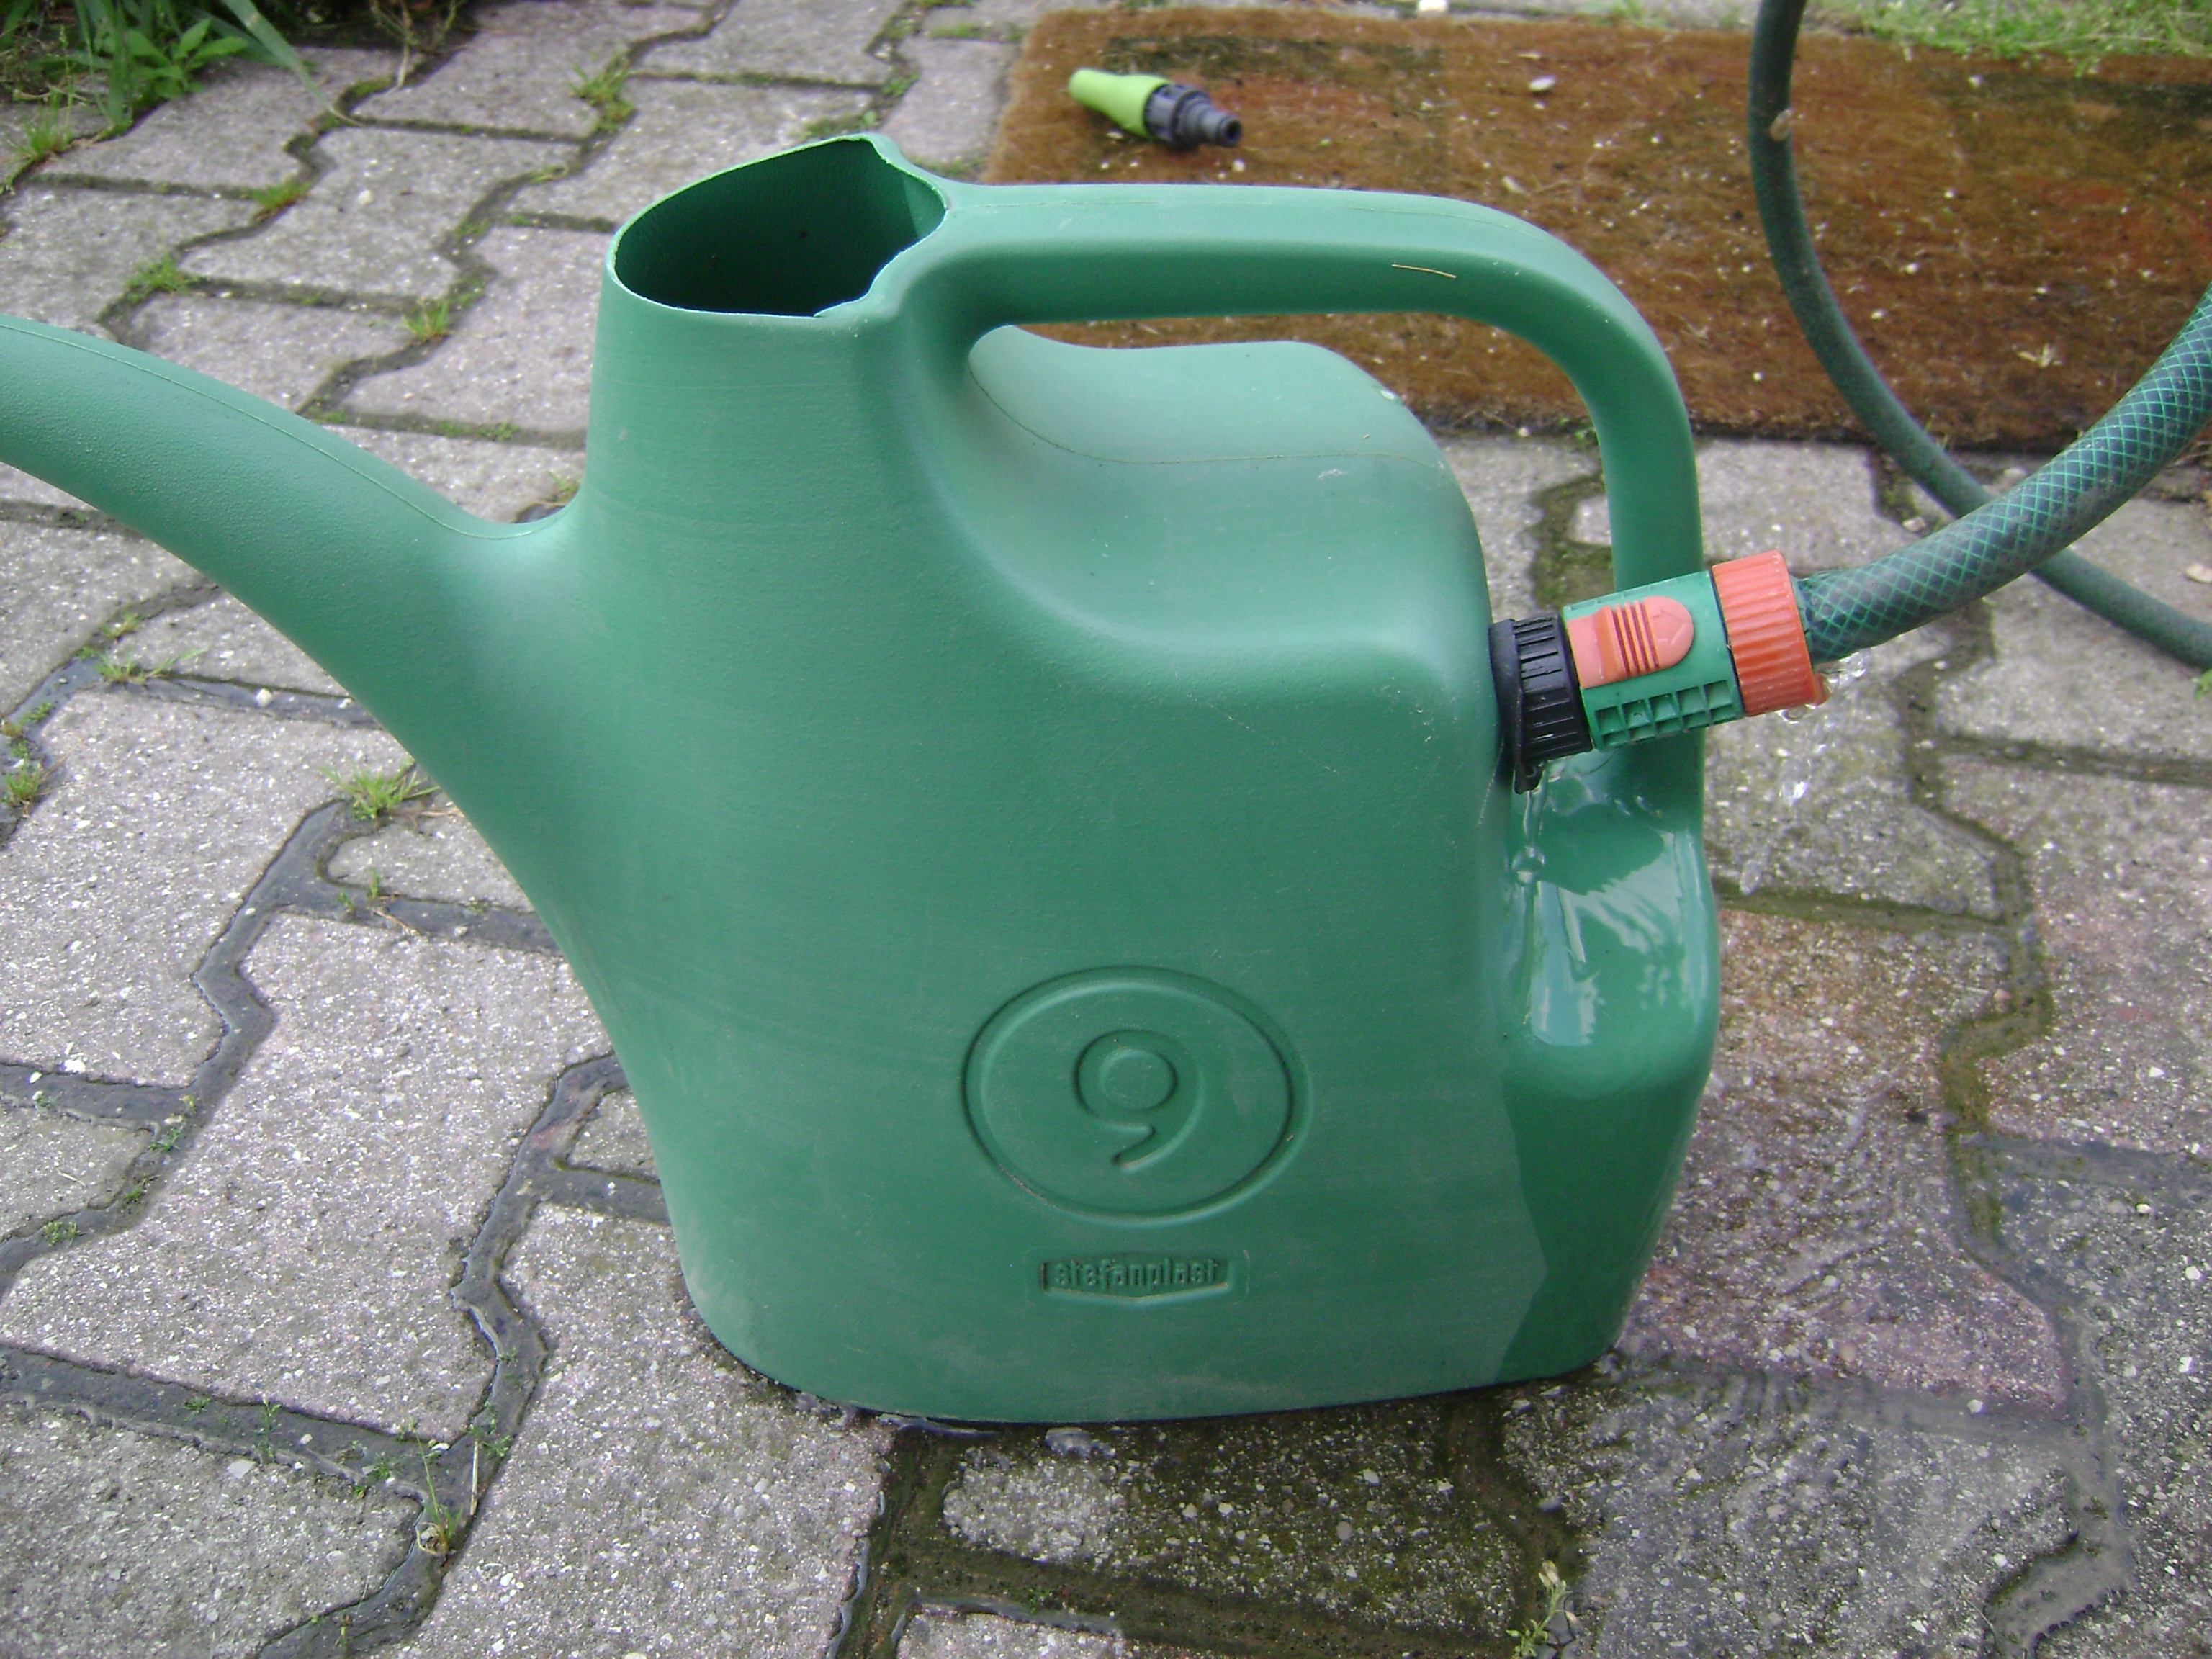 Watering can No stress